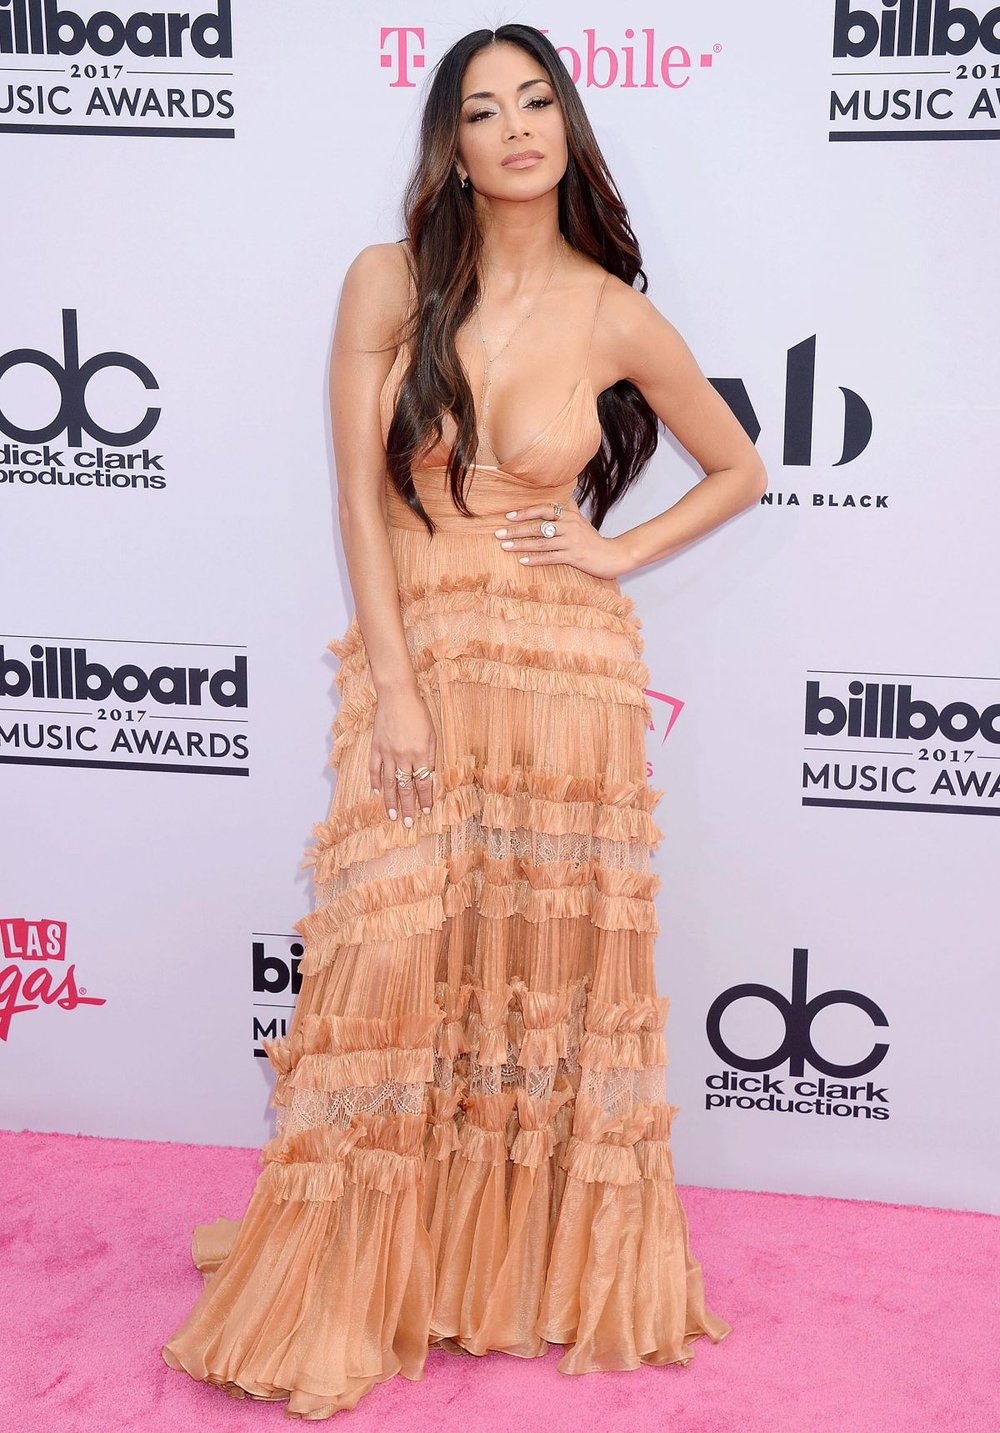 nicole-scherzinger-at-billboard-music-awards-2017-in-las-vegas-05-21-2017_3.jpg